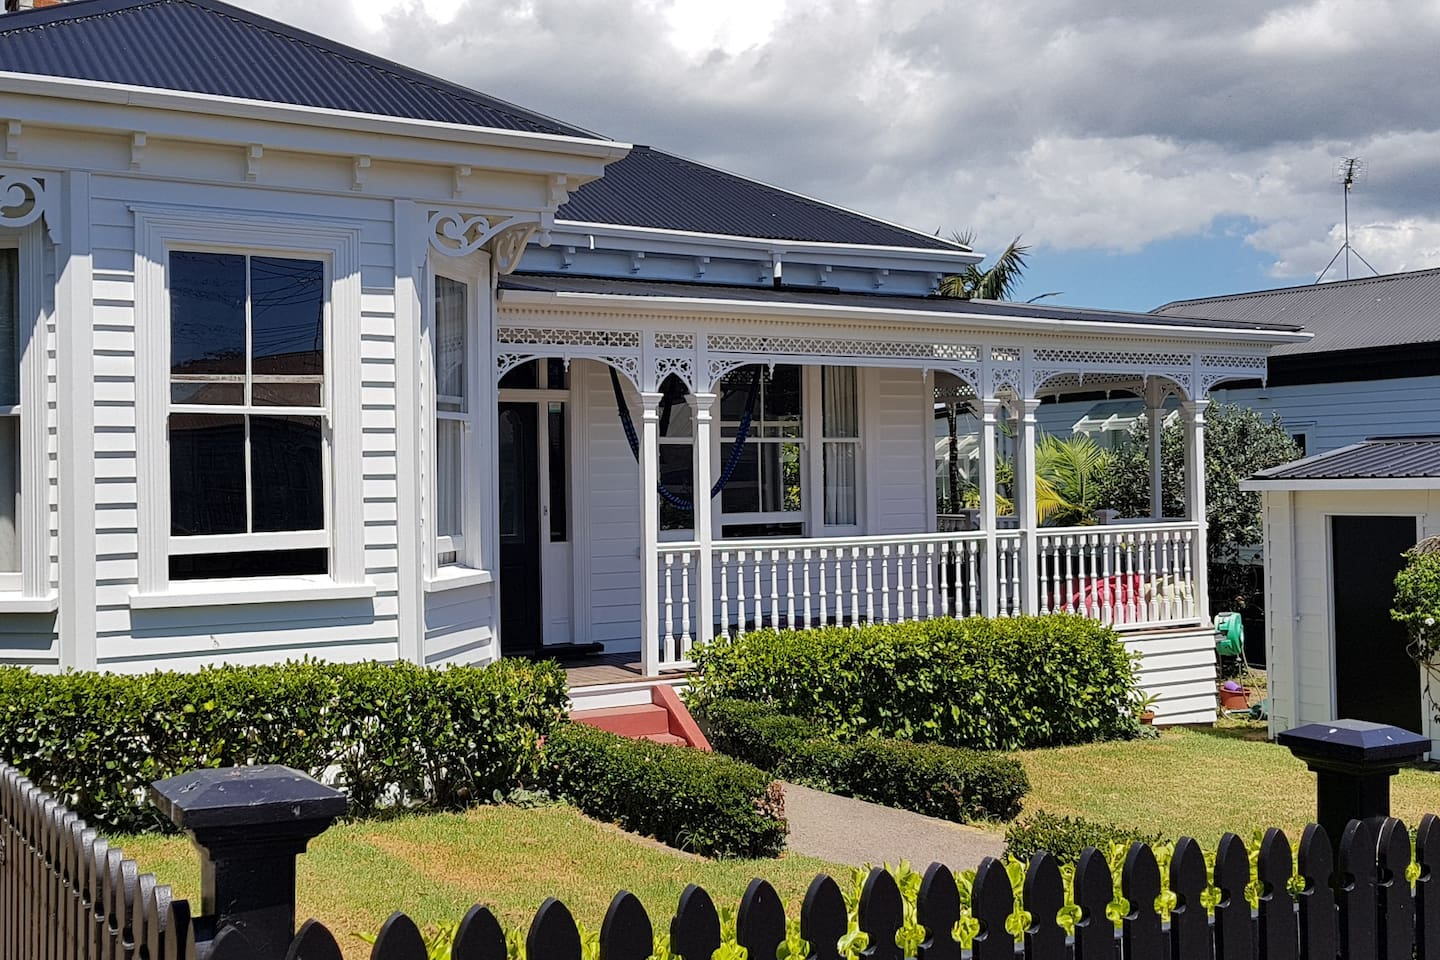 Beautifully restored 1900s villa in the heart of Ponsonby, Auckland.